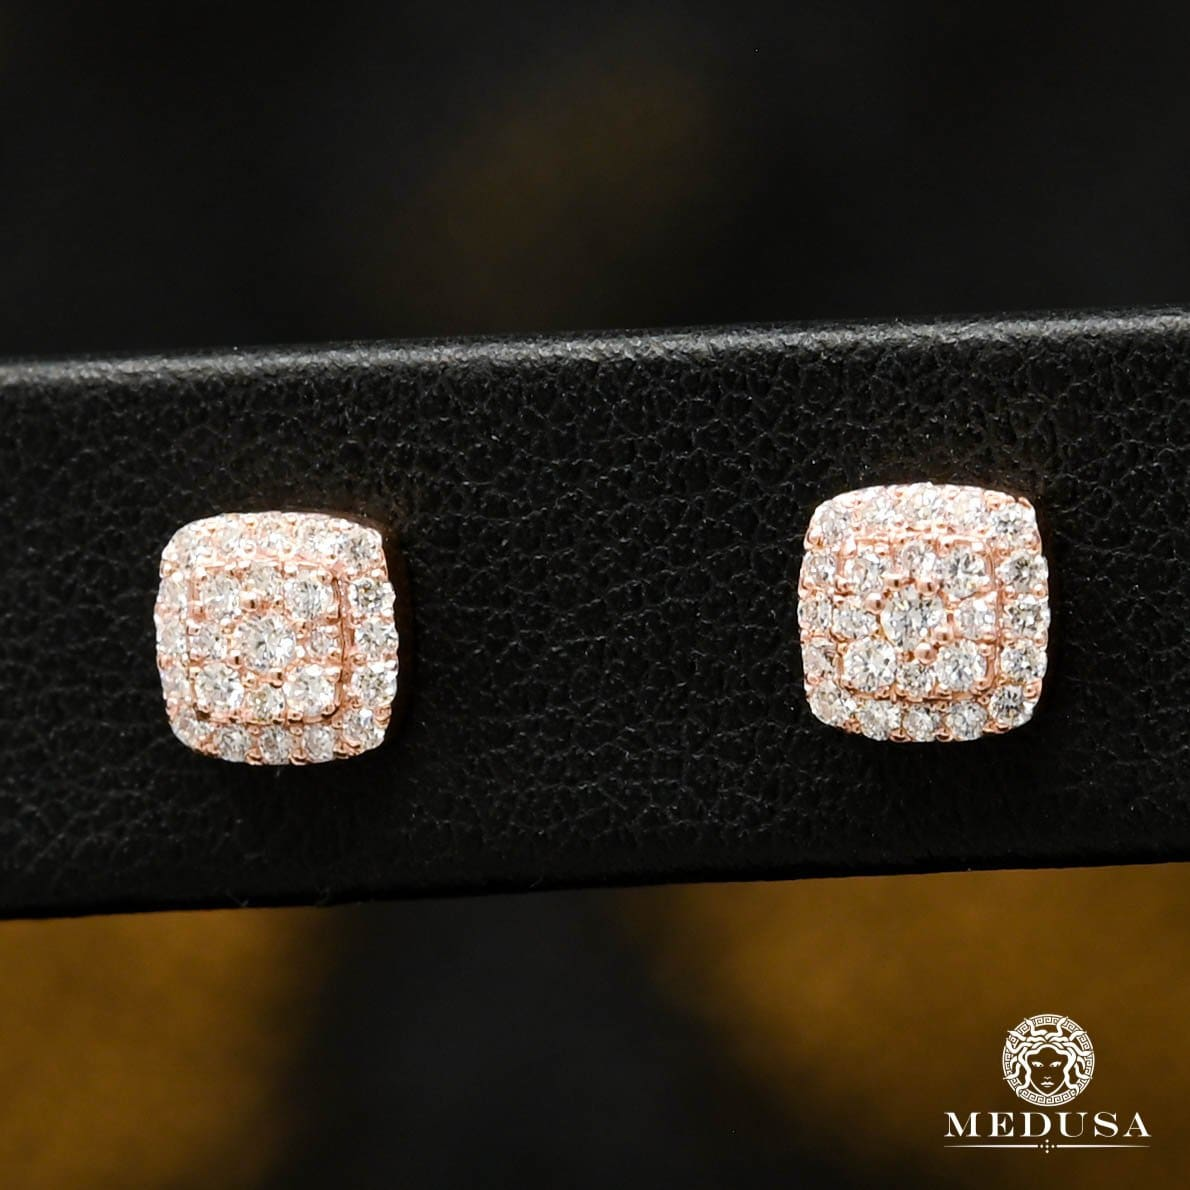 10K Gold Diamond Studs | D20 Studs Earrings - Rose Gold Diamond